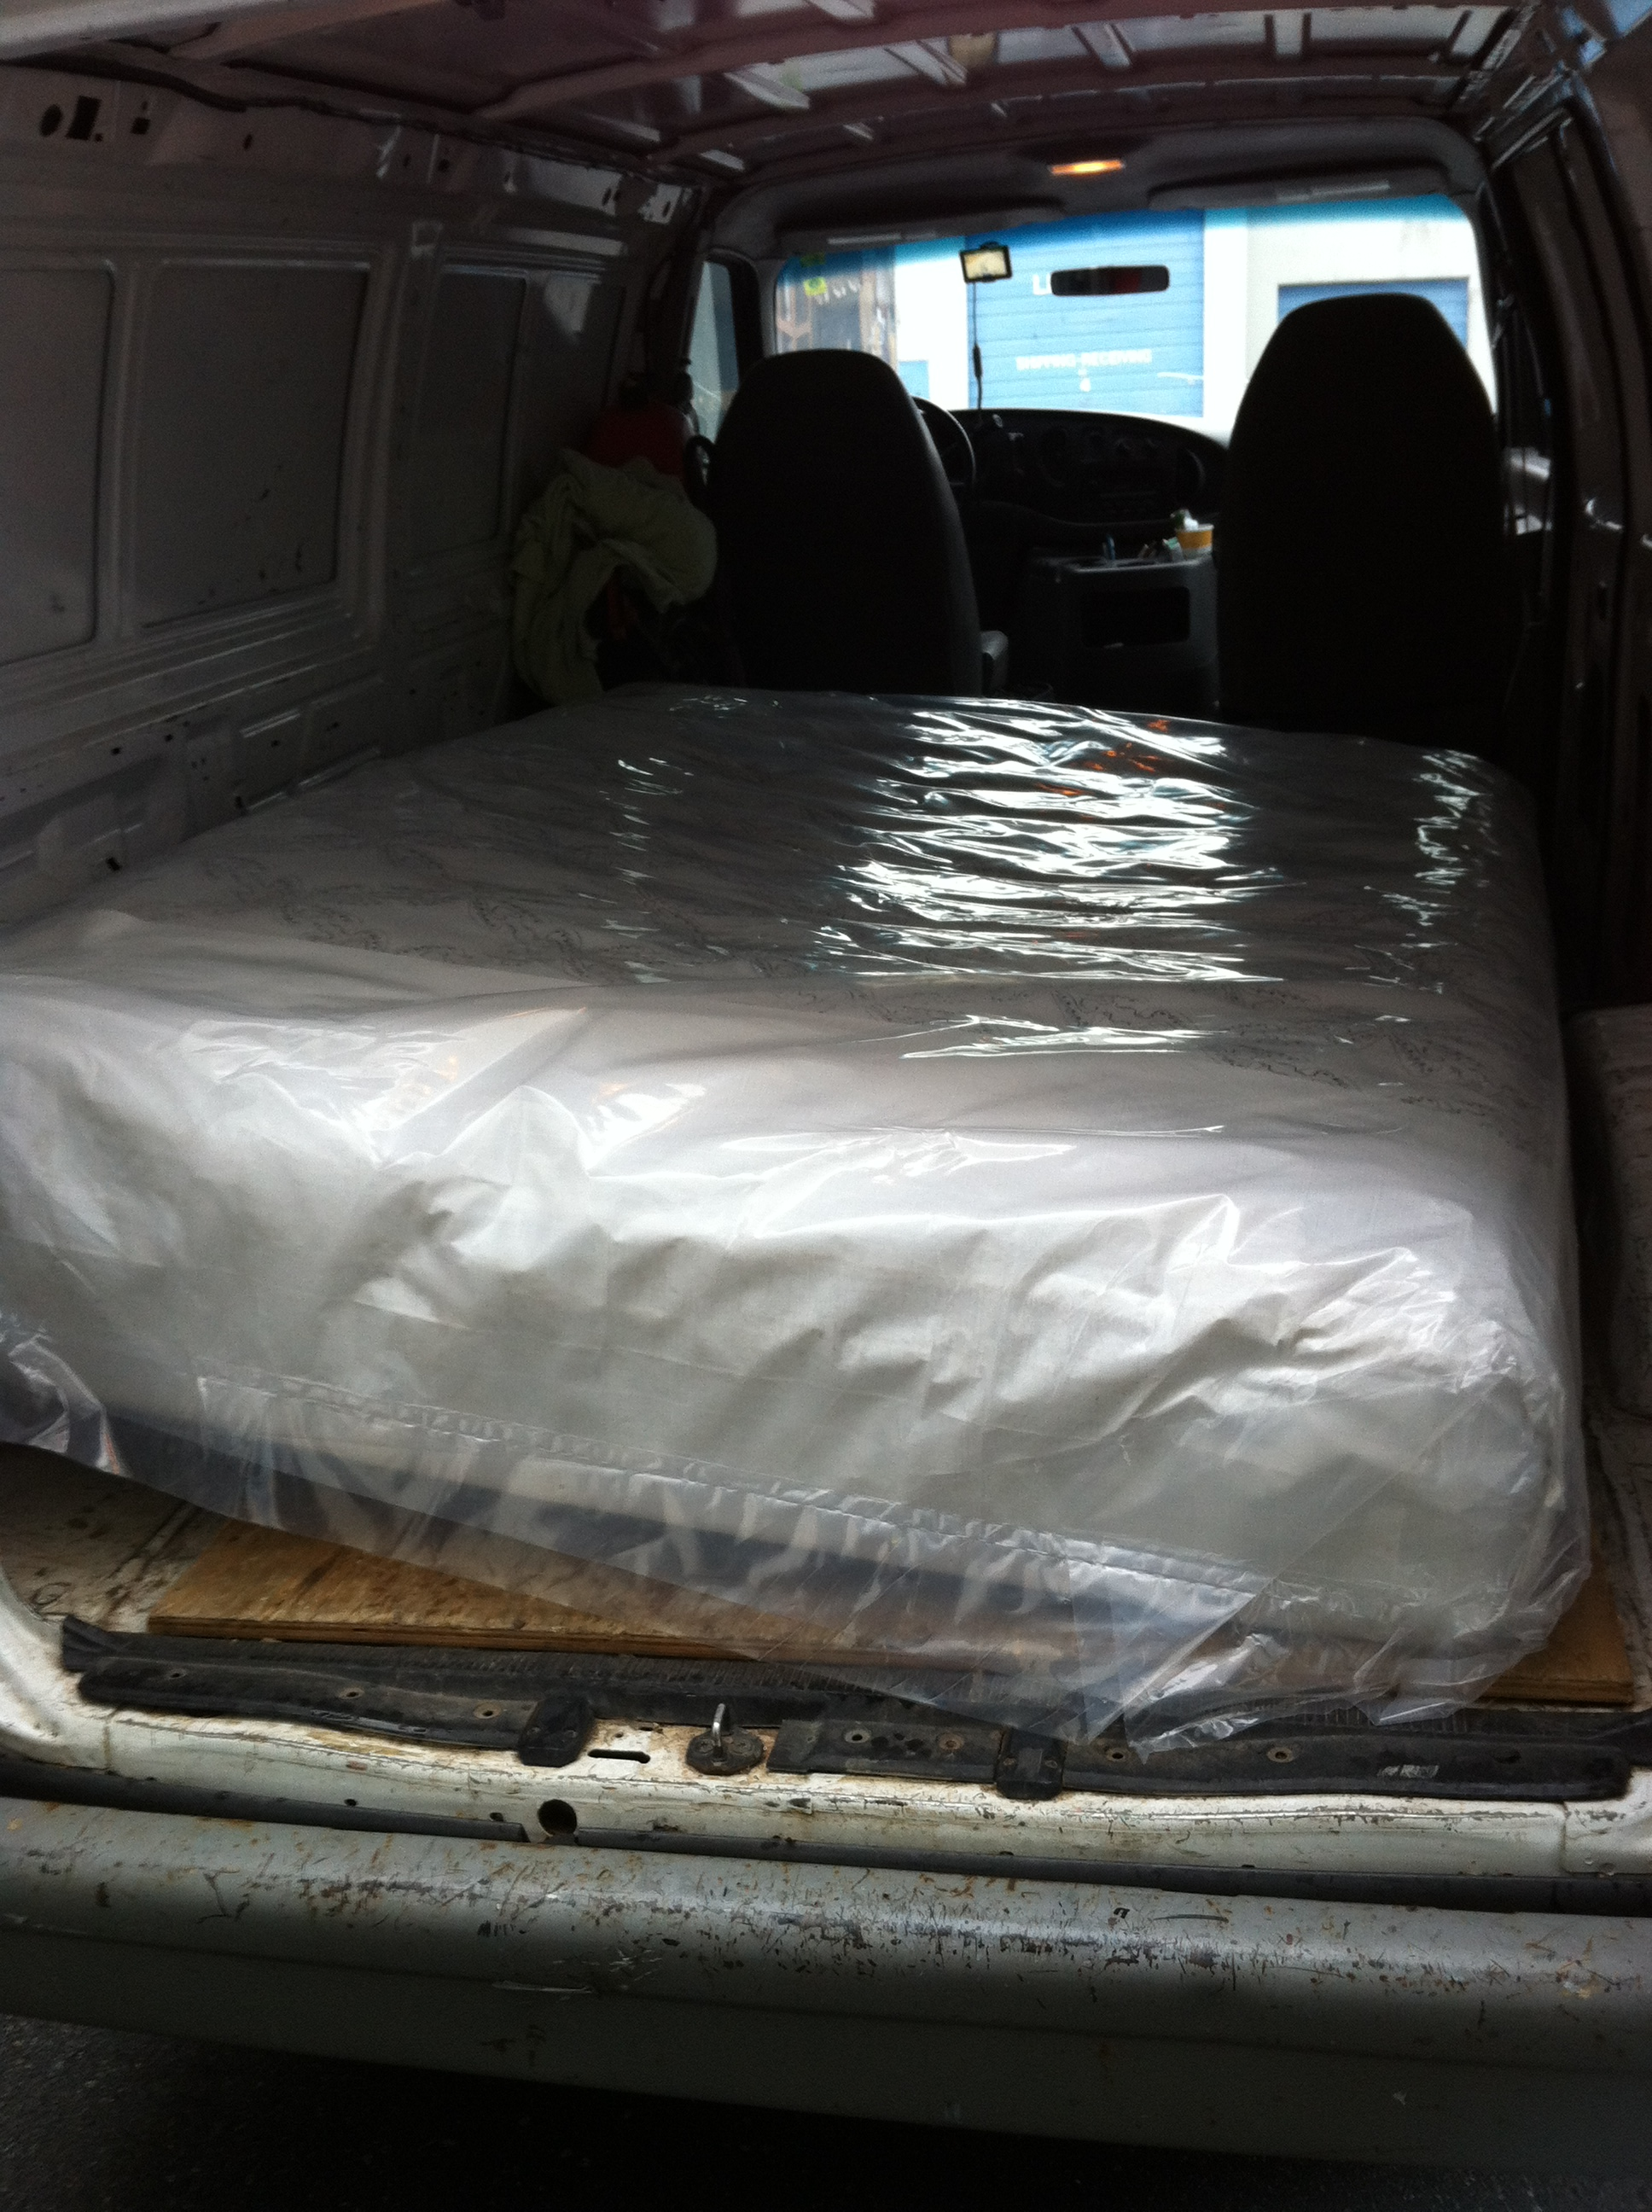 Ikea Richmond Delivery Short Notice Mattress Delivery From The Directbuy Store In